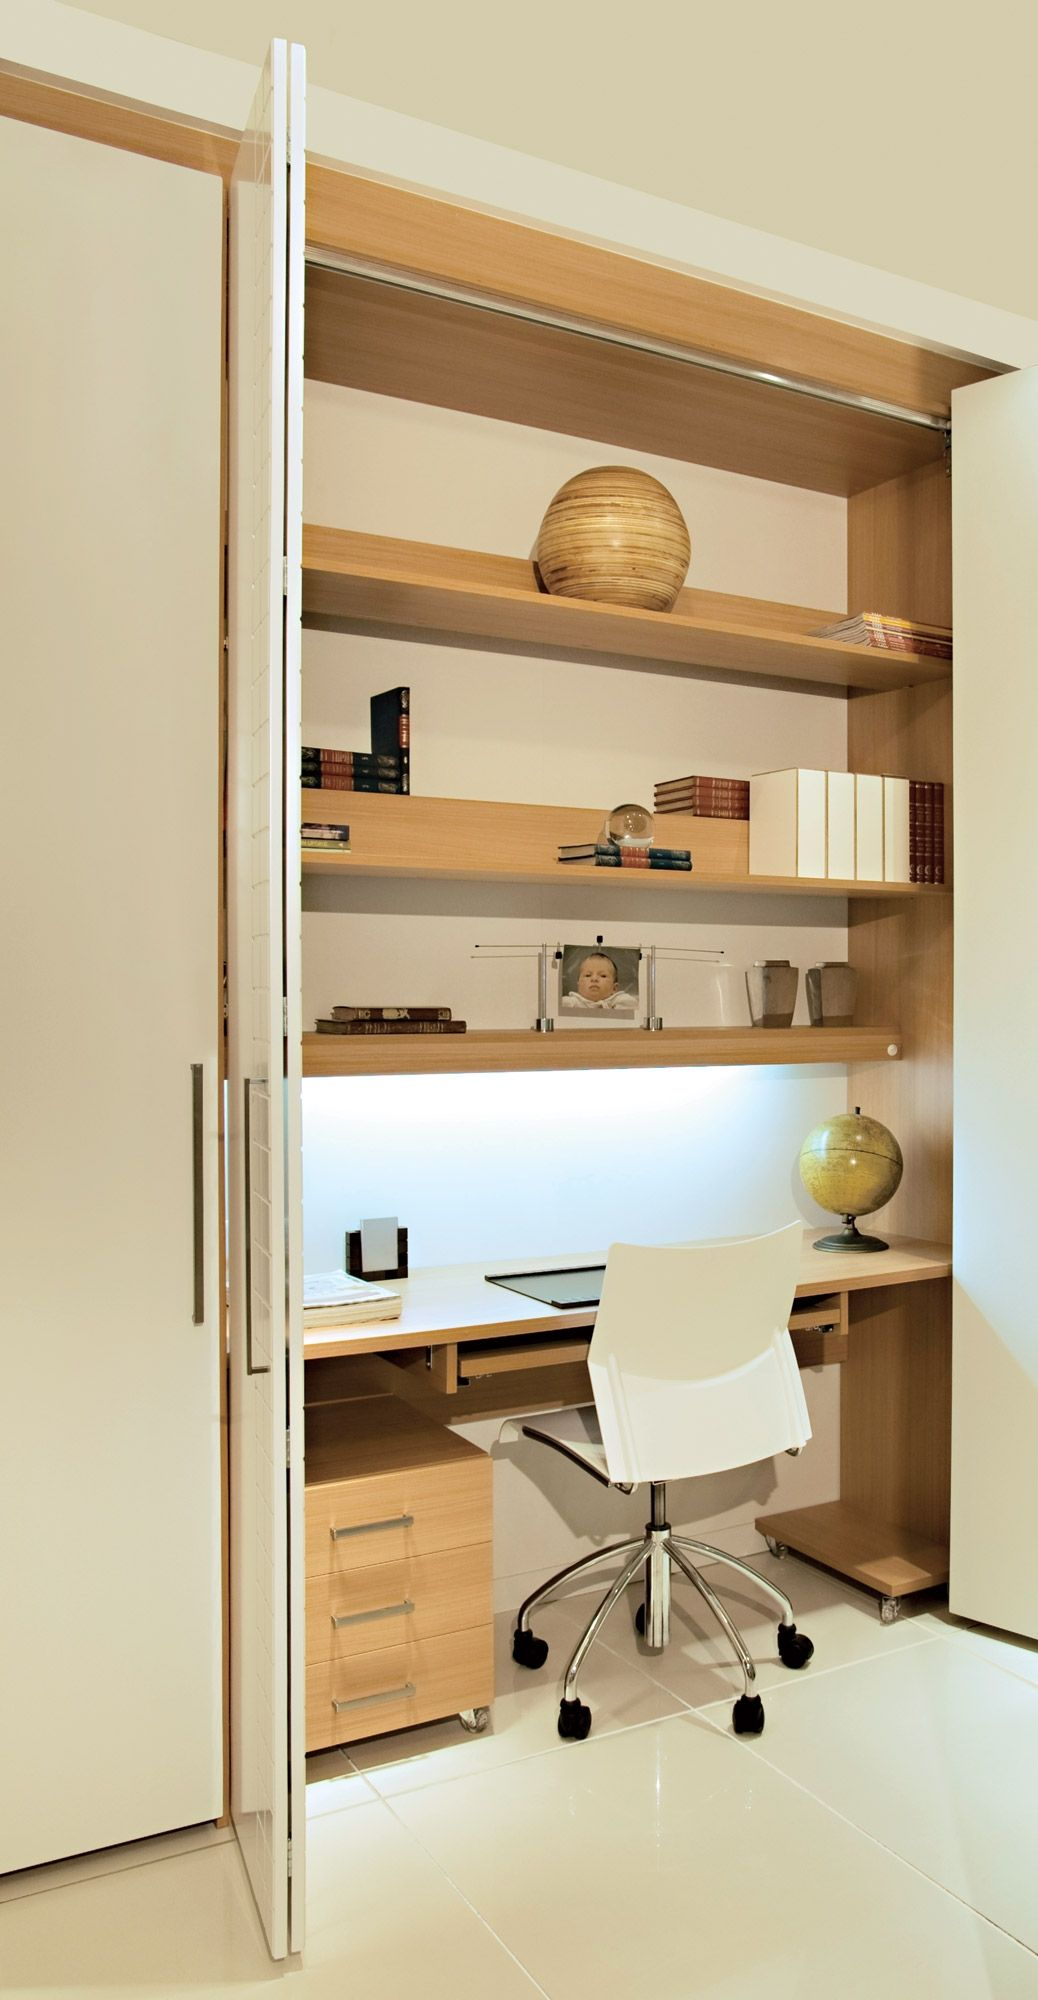 having a desk area that can be completely closed up and locked home office inside a closet